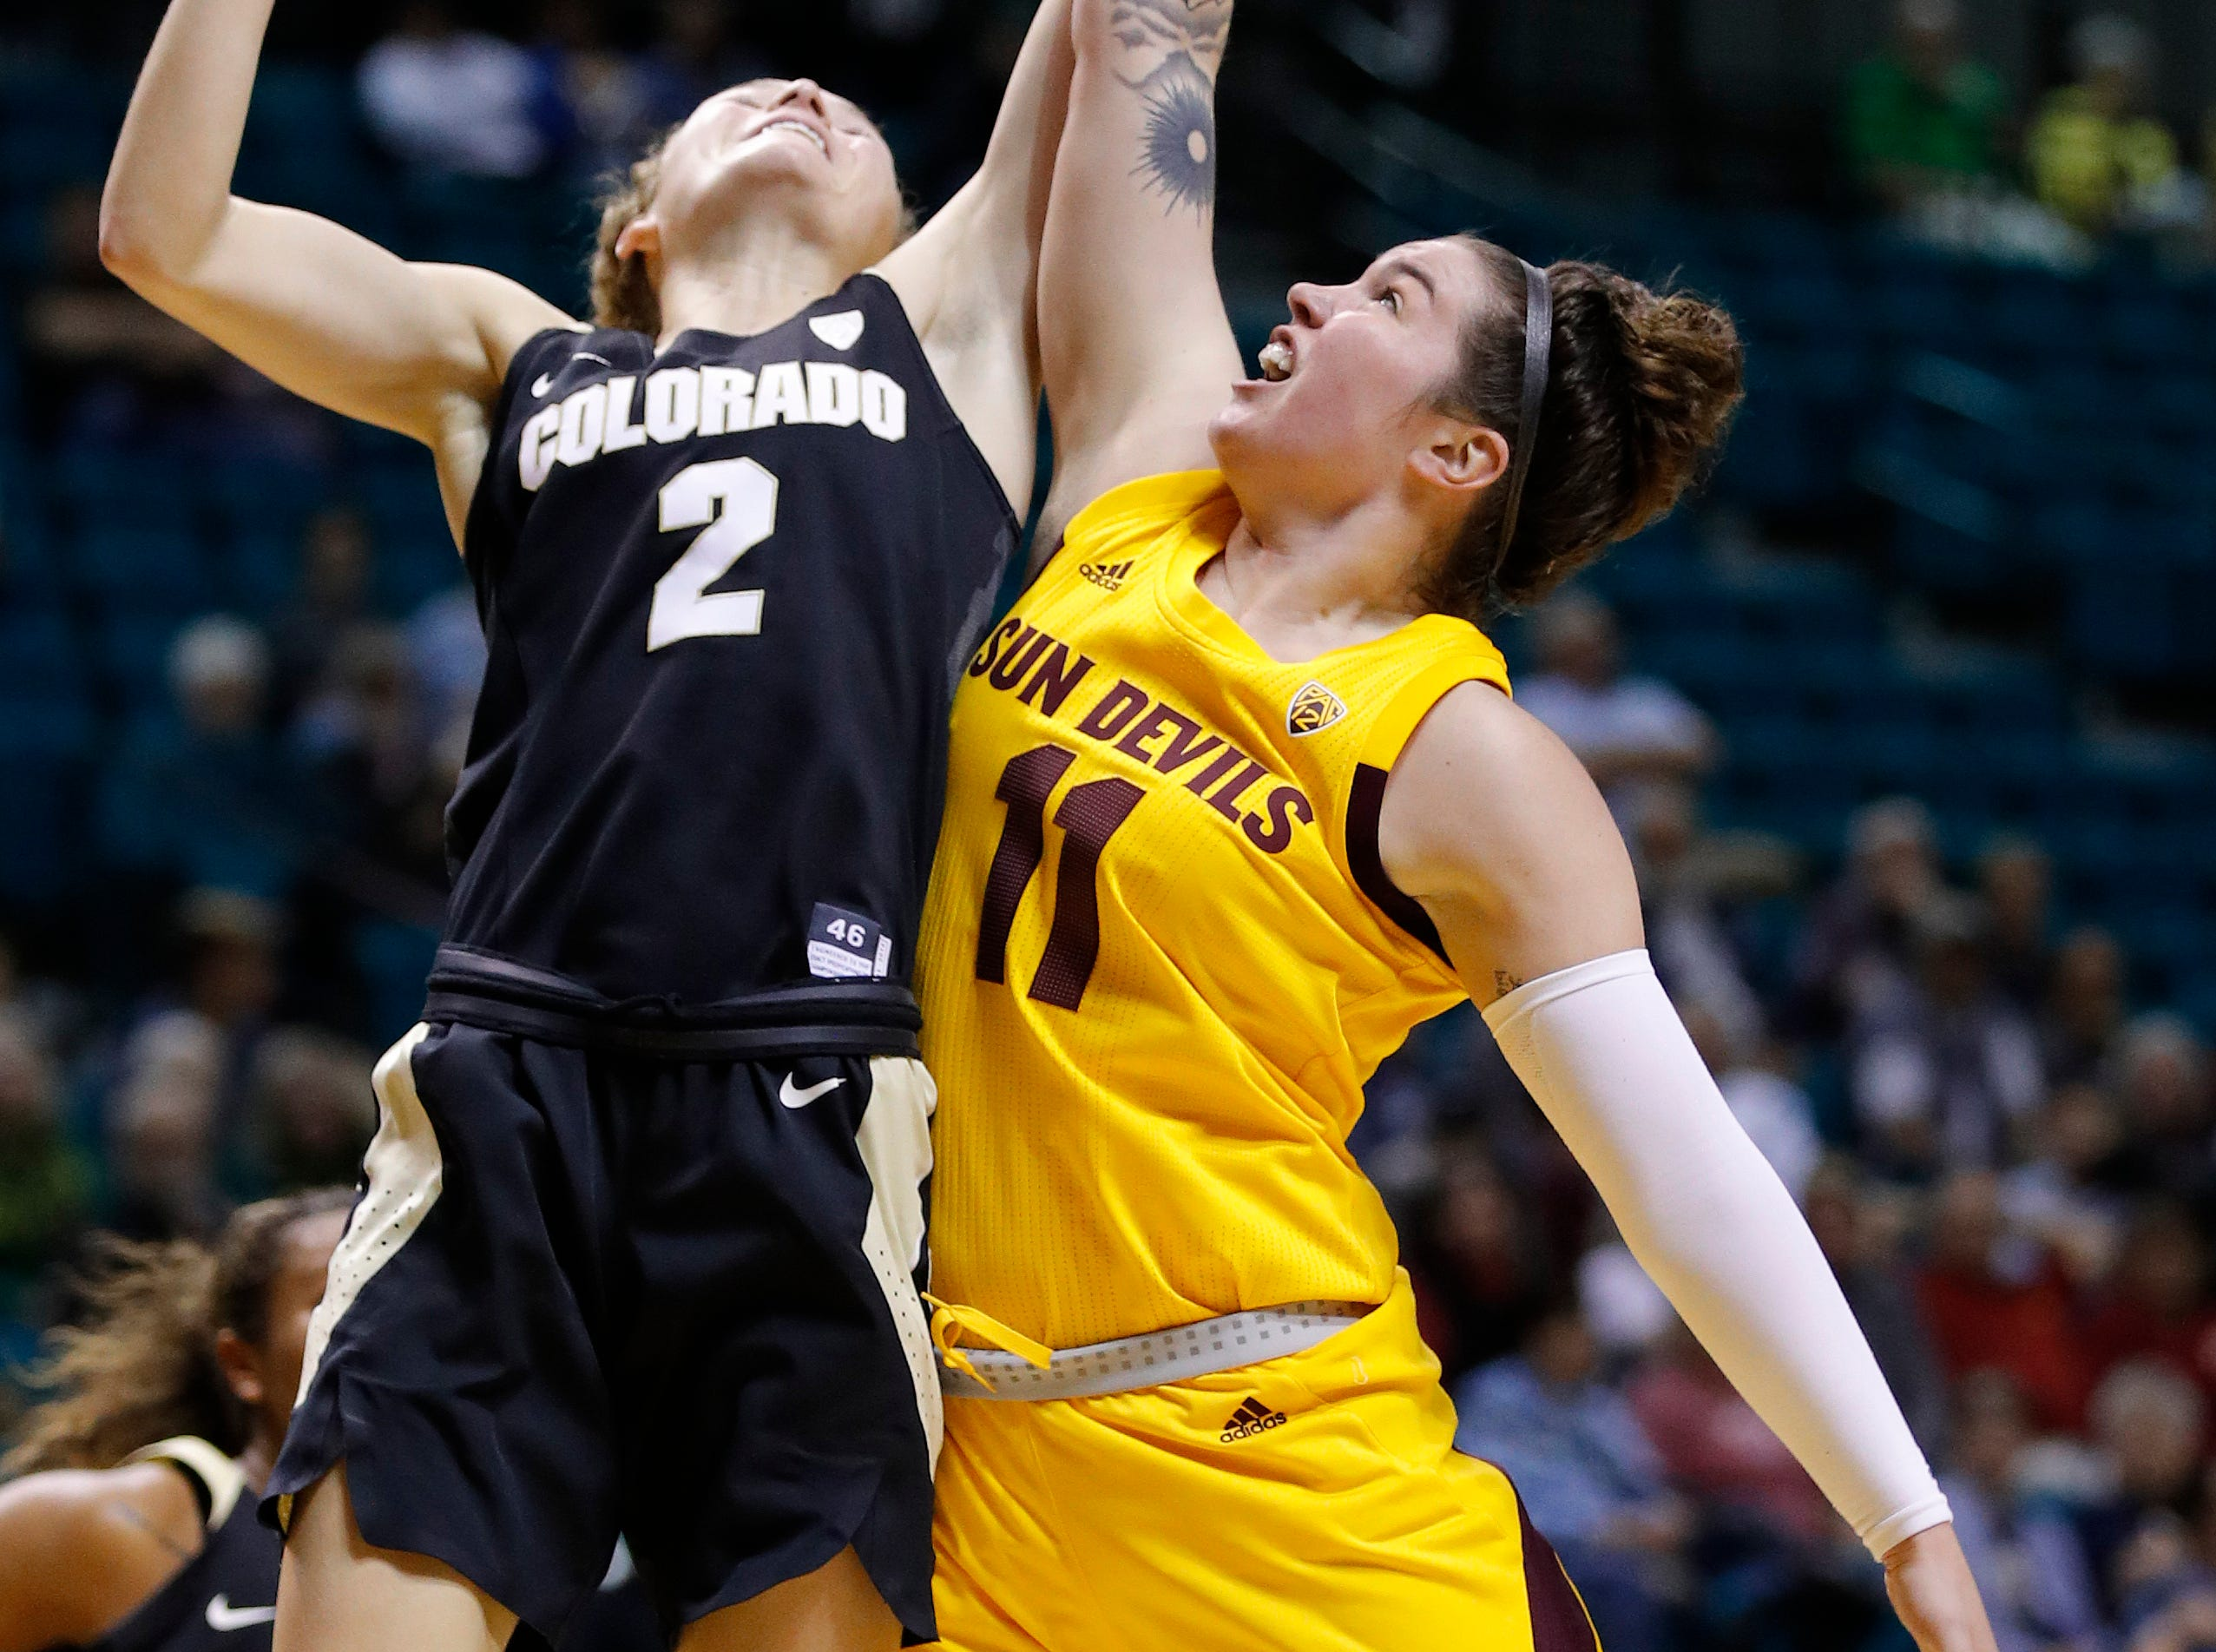 Colorado's Alexis Robinson, left, and Arizona State's Robbi Ryan battle for a rebound during the second half of an NCAA college basketball game at the Pac-12 women's tournament Thursday, March 7, 2019, in Las Vegas. (AP Photo/John Locher)